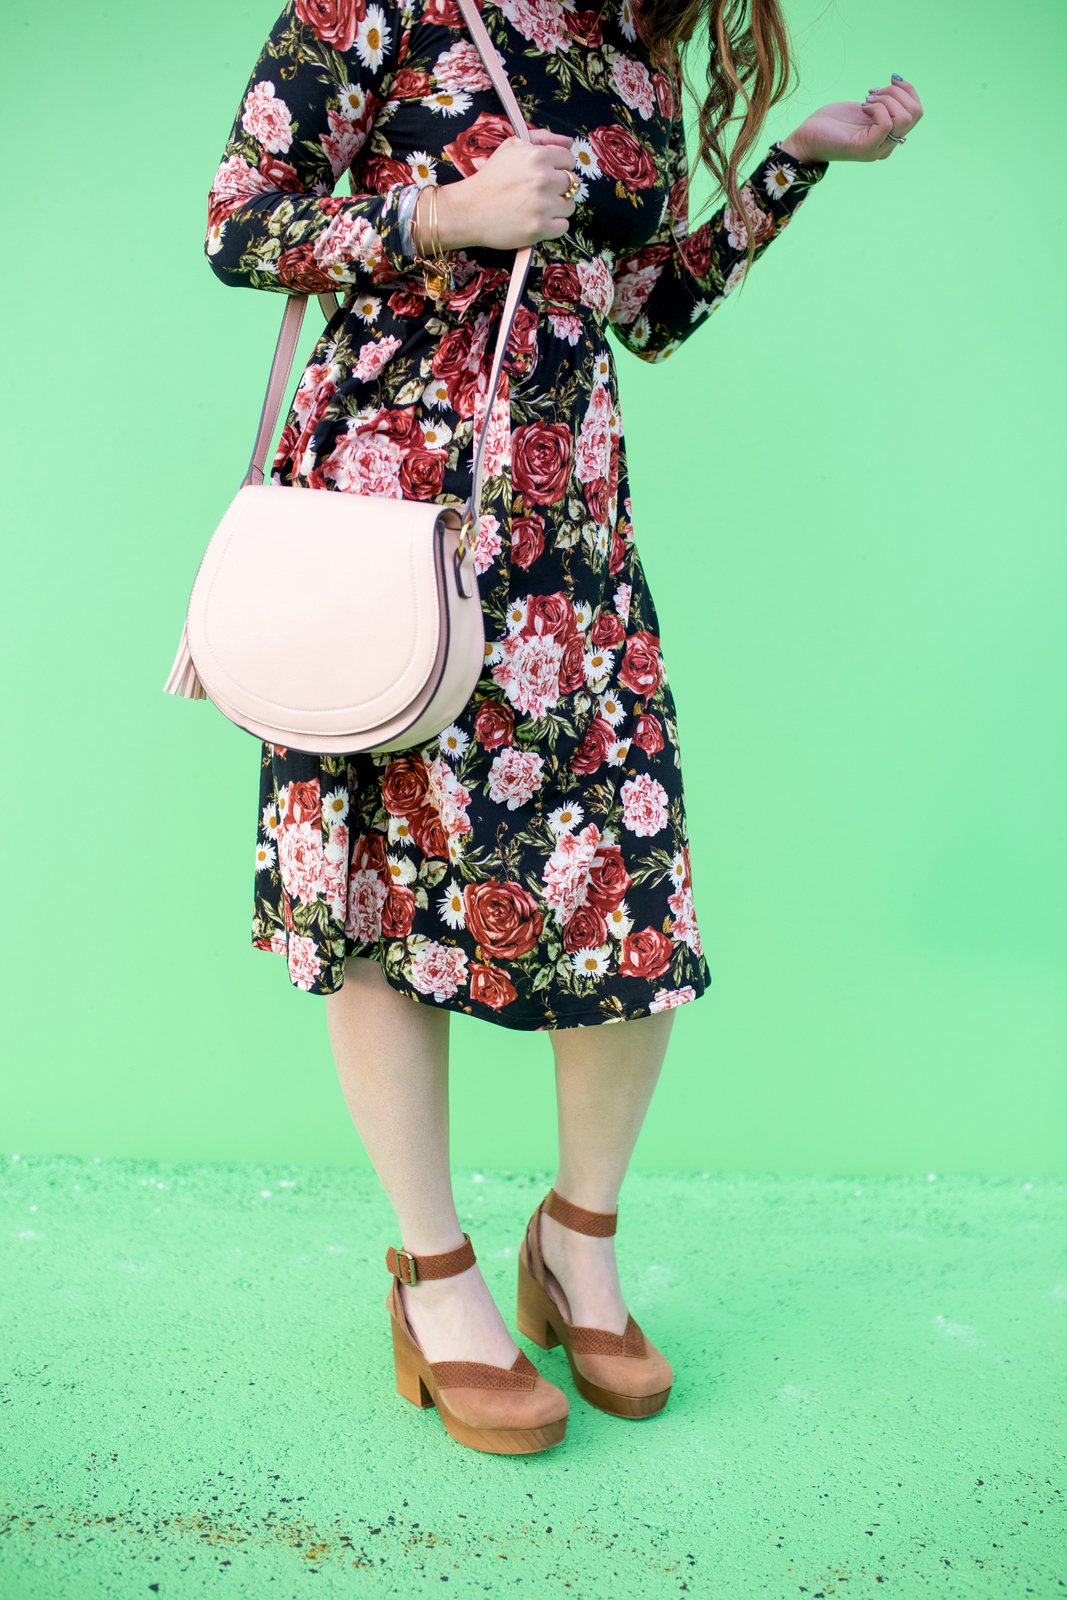 Floral dress and clogs